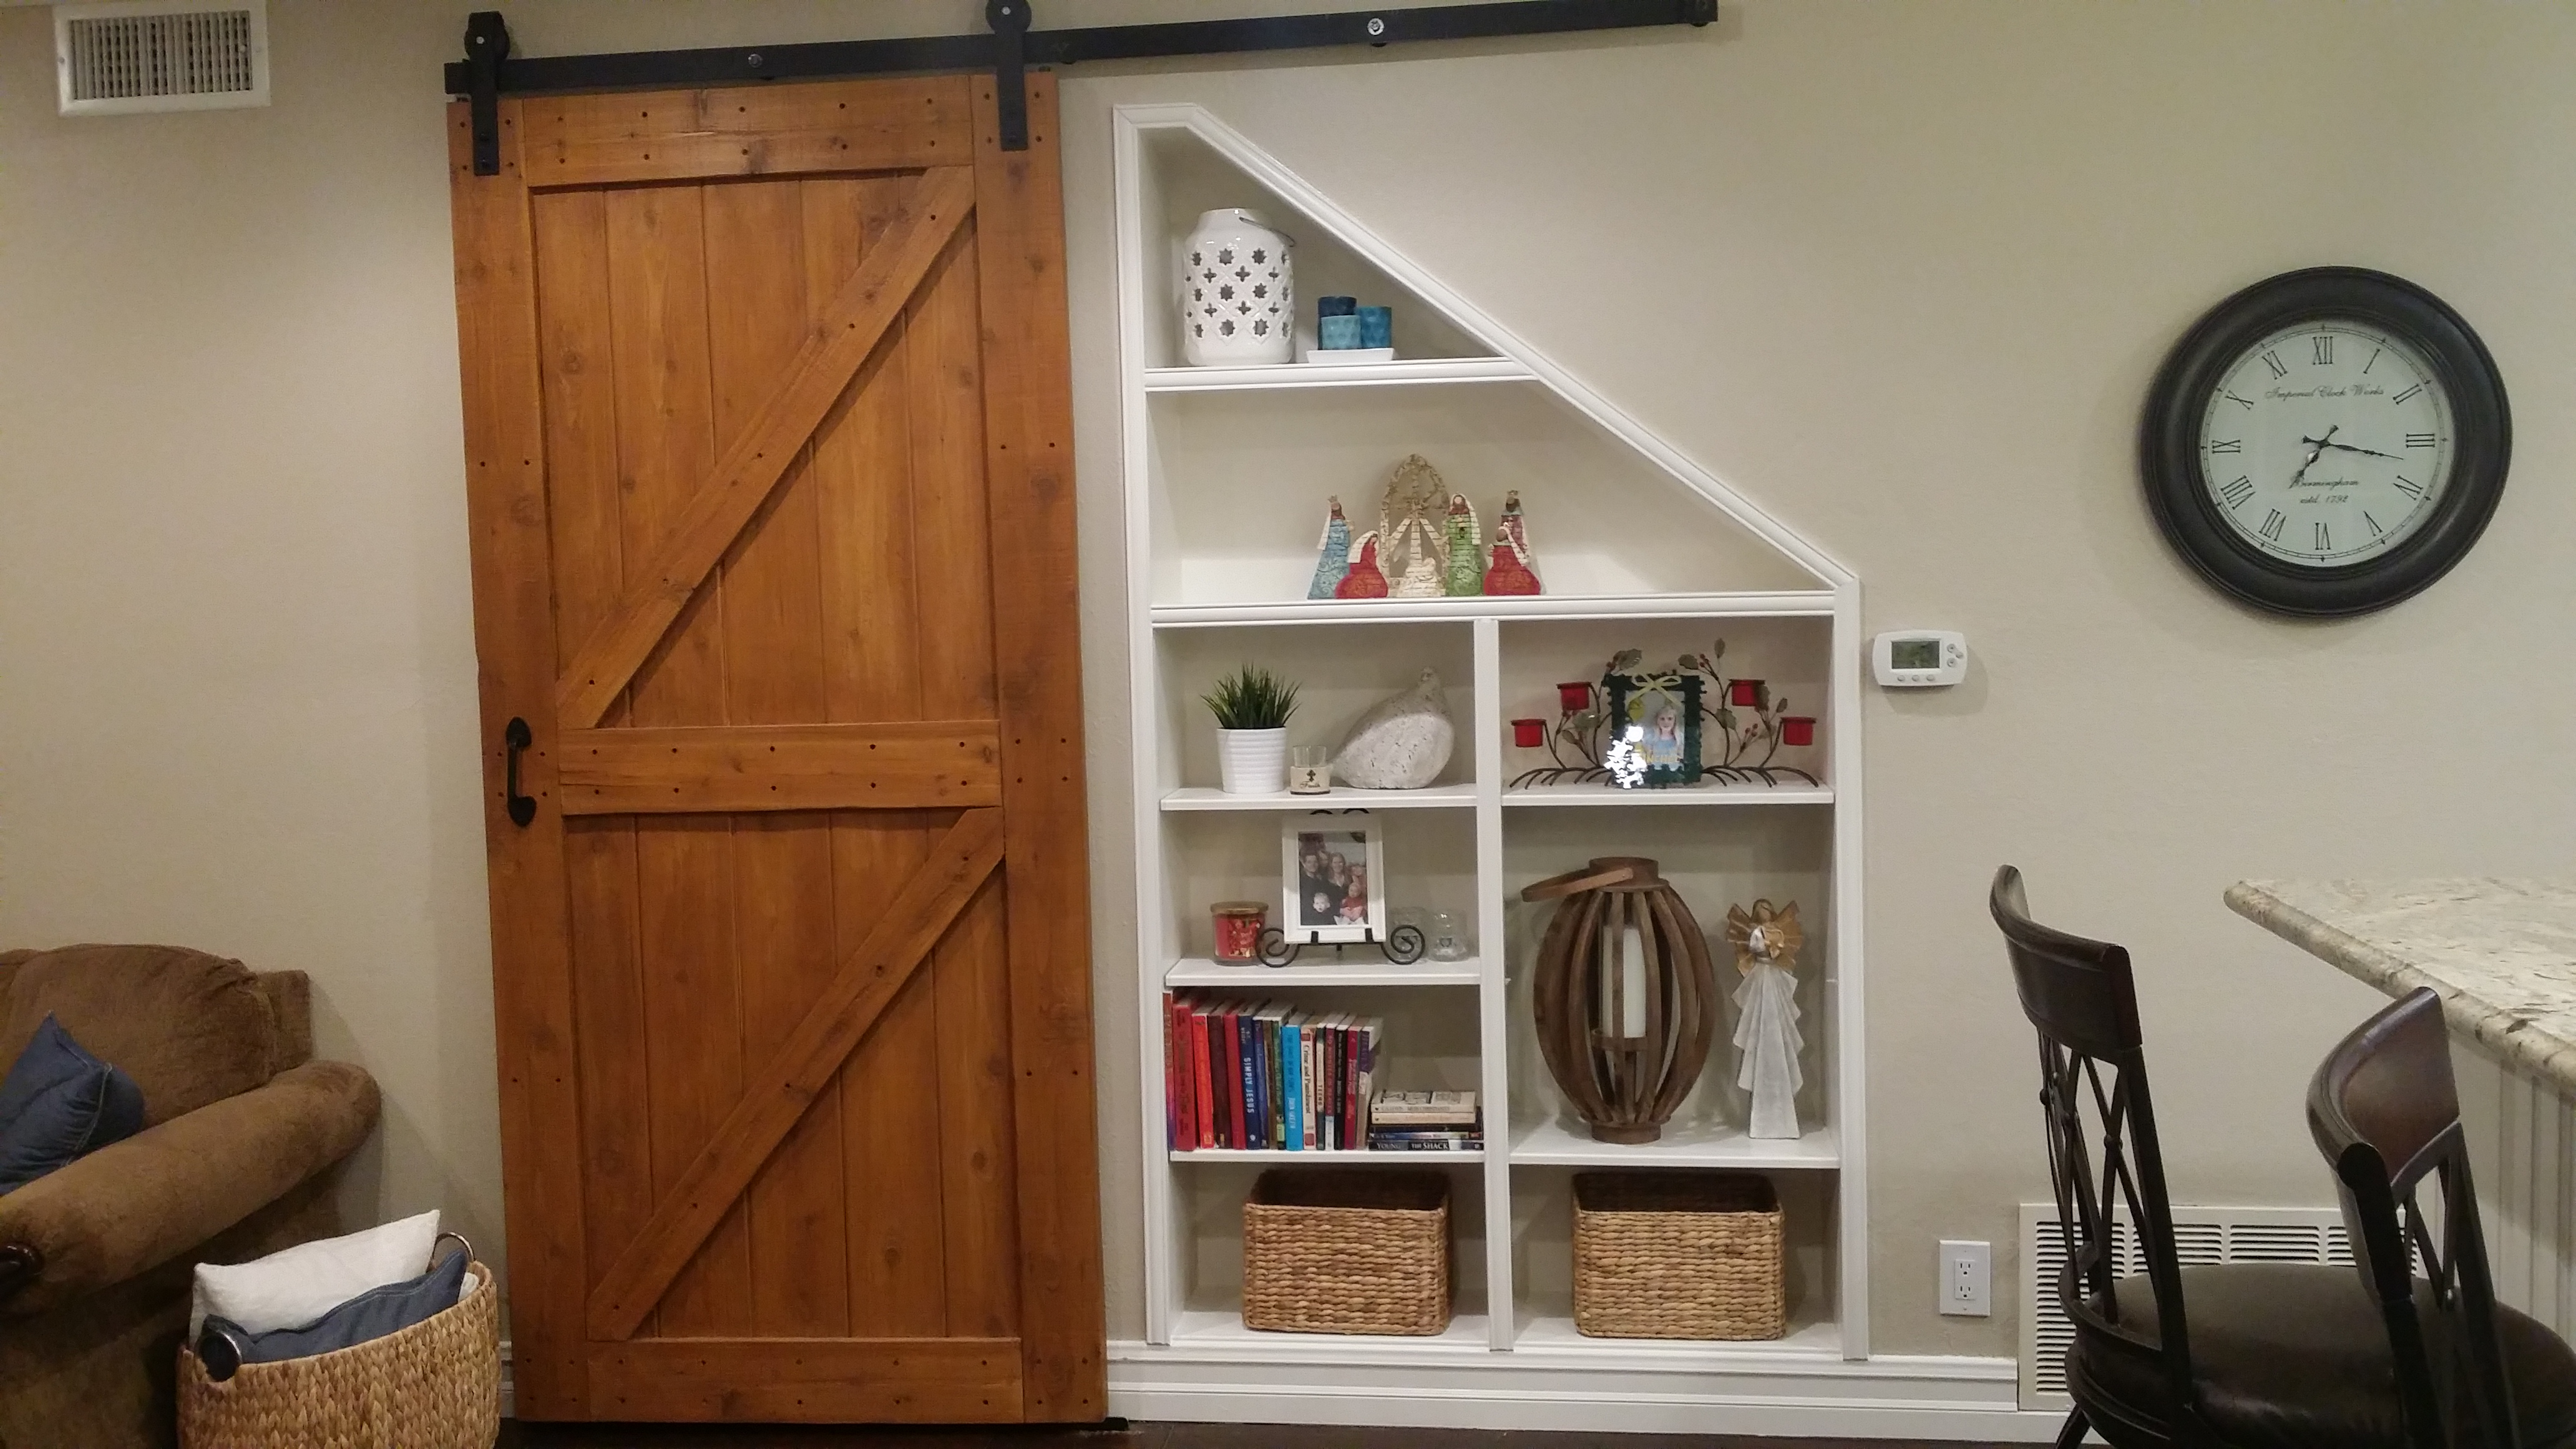 Barn Door and Shelves in Anaheim Hills